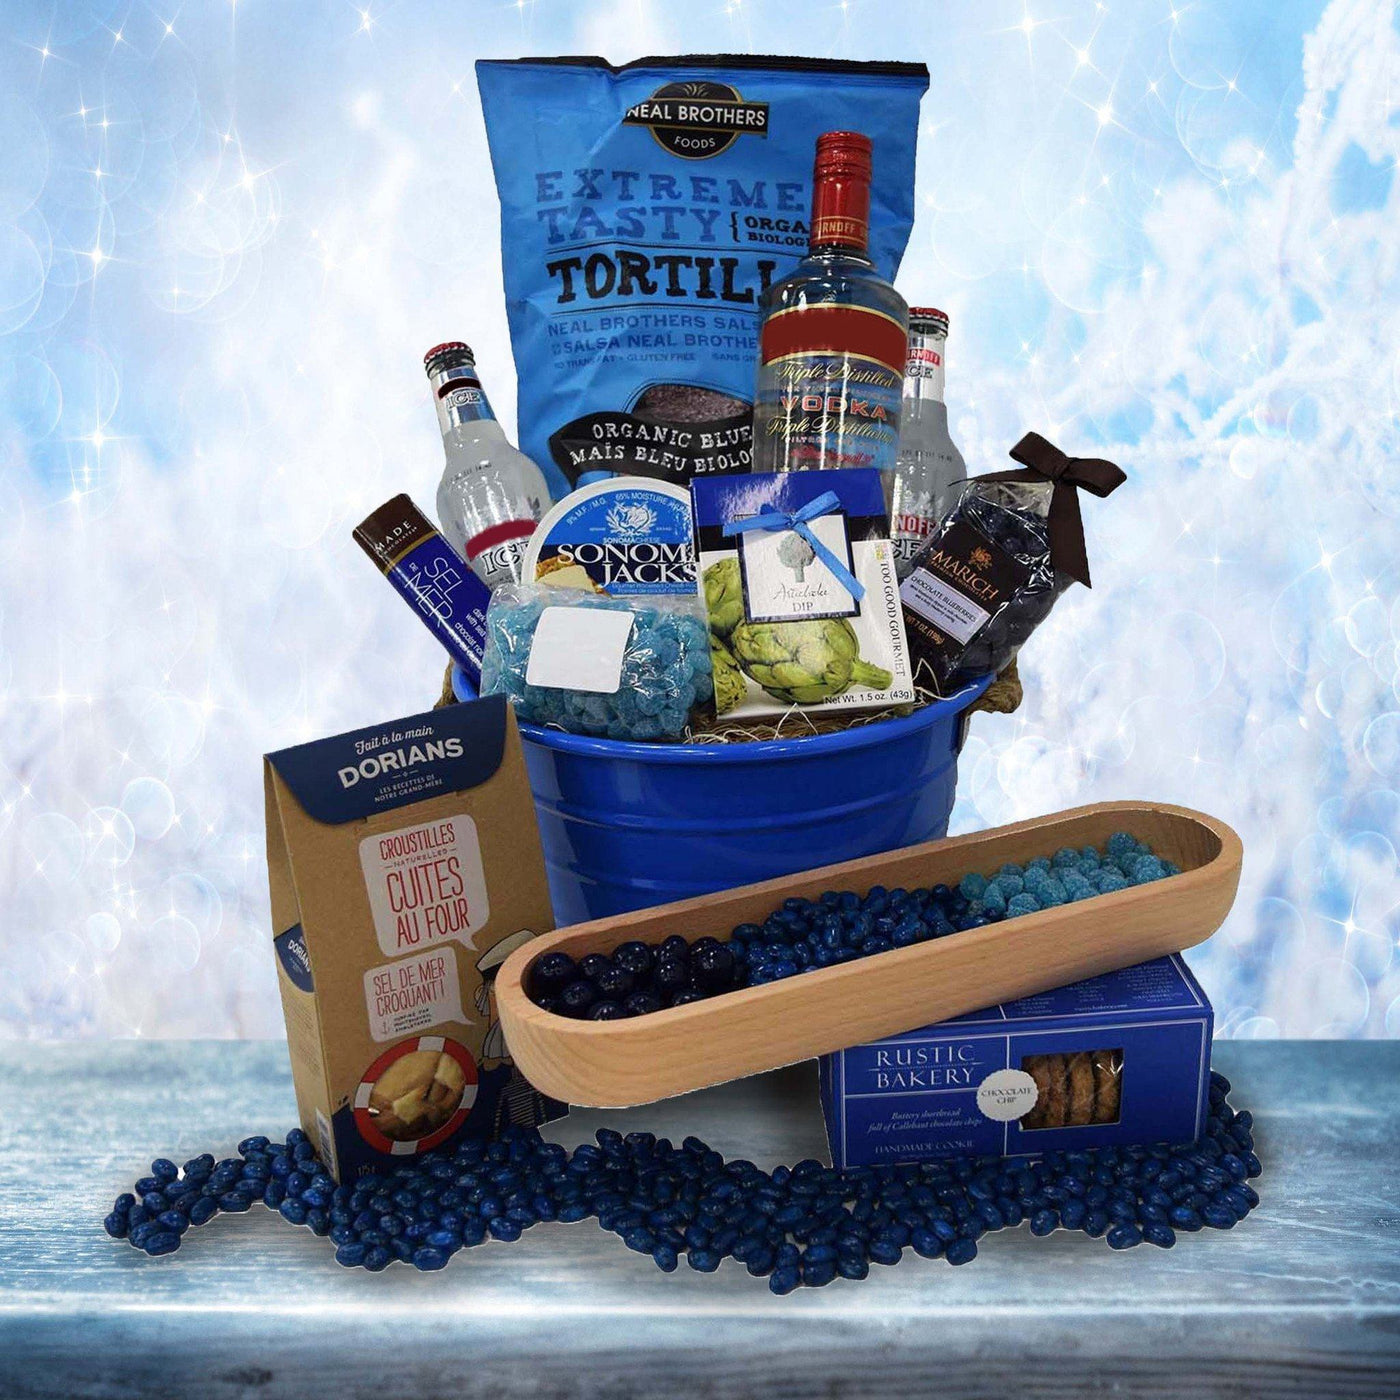 The Blue Snacking Gift Basket